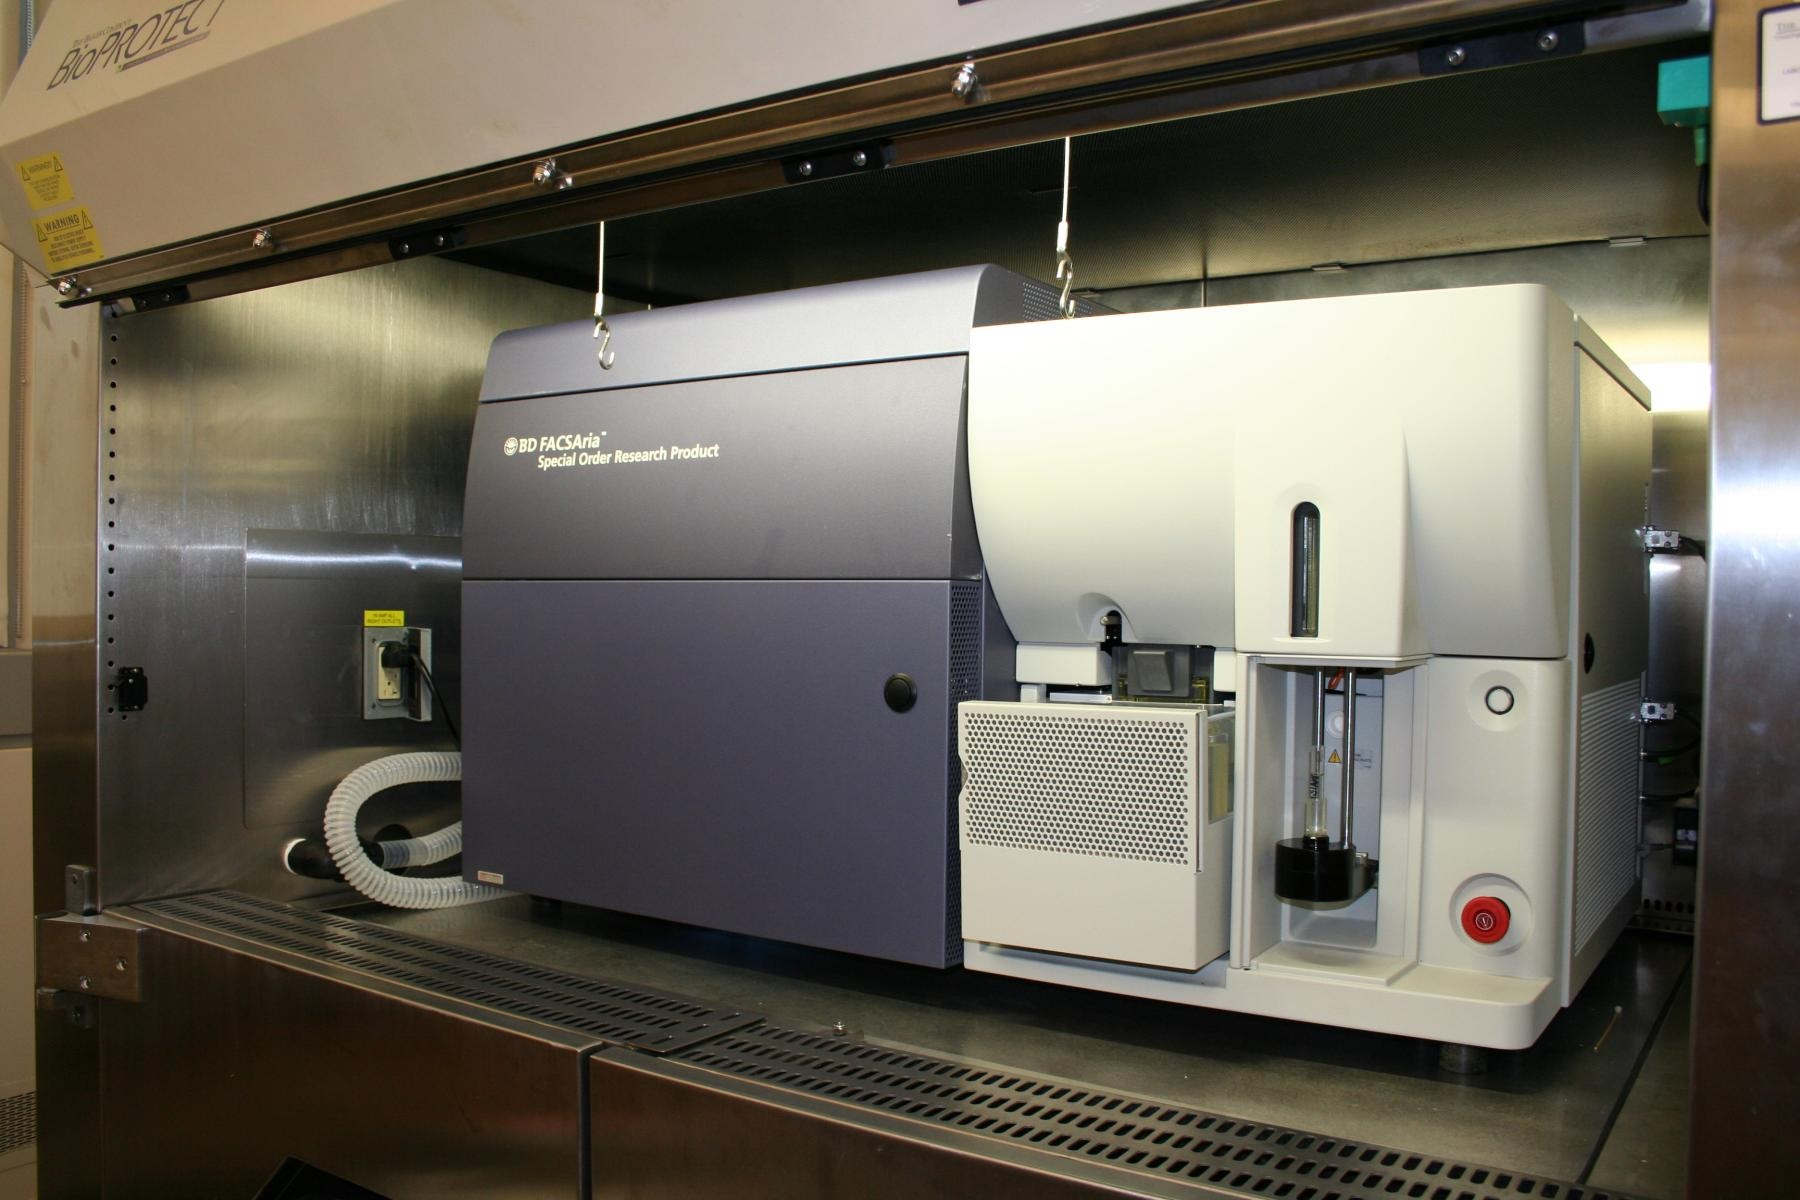 BD FACSAria II - COMS approved facility allows for sterile sorting of fixed and unfixed human, non-human primate, and other animal specimens for HCV and HIV/AIDS research. BD FACS Aria II cell sorter equipped within a Bioprotect IV LE biosafety cabinet operates with 4 solid state lasers: 405nm violet measuring up to 8 parameters, 488nm blue measuring up to 2 parameters in addition to FSC and SSC, 532nm green measuring up to 5 parameters, and a 628nm red measuring up to 3 parameters, allowing sorting panels of up to 18 fluorescent markers.